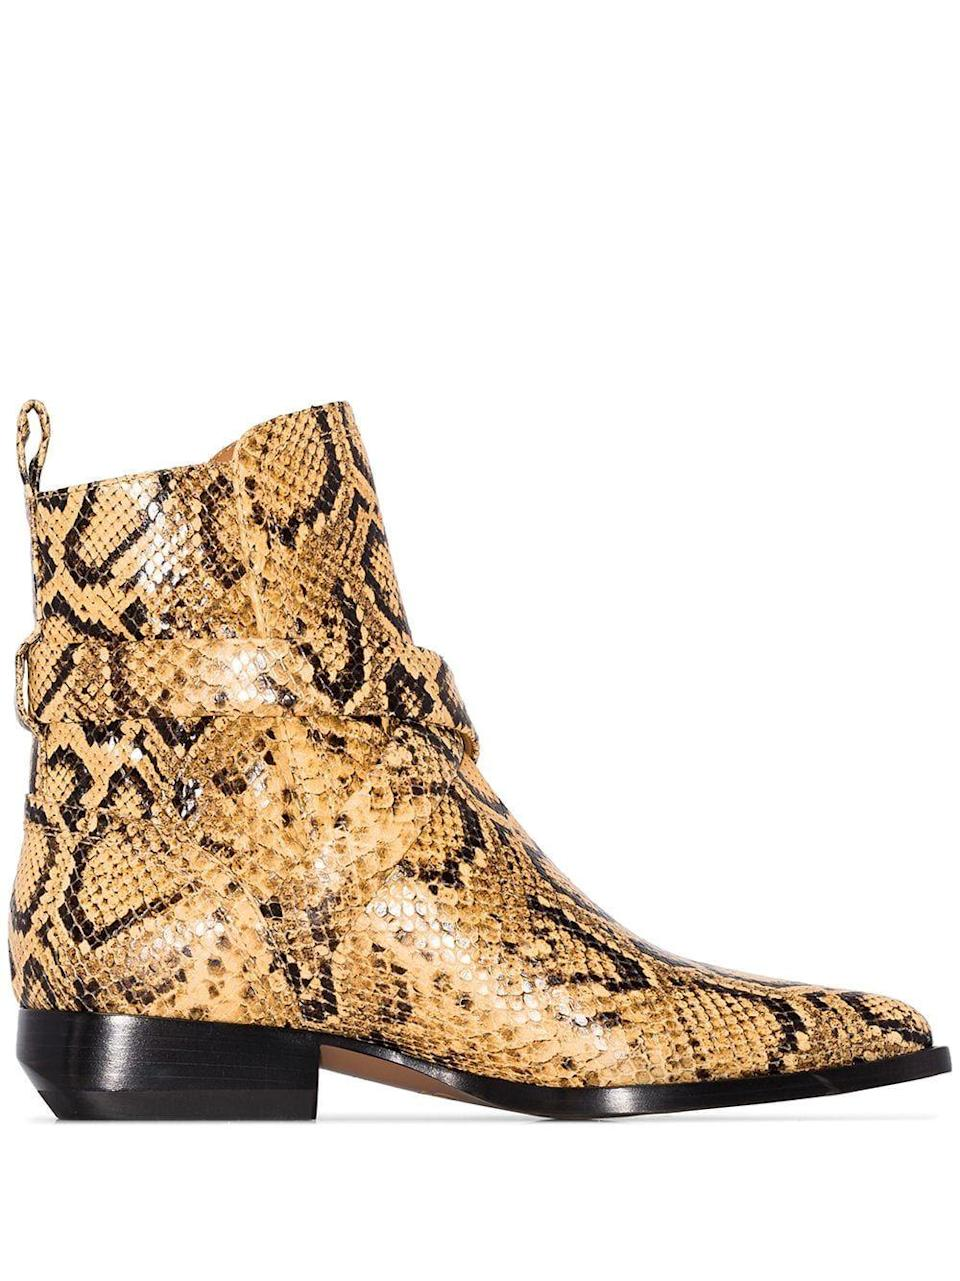 """<p><strong>Chloé</strong></p><p>farfetch.com</p><p><strong>$504.00</strong></p><p><a href=""""https://go.redirectingat.com?id=74968X1596630&url=https%3A%2F%2Fwww.farfetch.com%2Fshopping%2Fwomen%2Fchloe-rylee-30mm-snake-effect-ankle-boots-item-13998059.aspx&sref=https%3A%2F%2Fwww.harpersbazaar.com%2Ffashion%2Ftrends%2Fg7958%2Fhow-to-wear-ankle-boots%2F"""" rel=""""nofollow noopener"""" target=""""_blank"""" data-ylk=""""slk:Shop Now"""" class=""""link rapid-noclick-resp"""">Shop Now</a></p><p>High shine, rich texture, and the ideal walking heel: This luxe boot not only looks cool with a miniskirt, but just about everything else in your wardrobe too. </p>"""